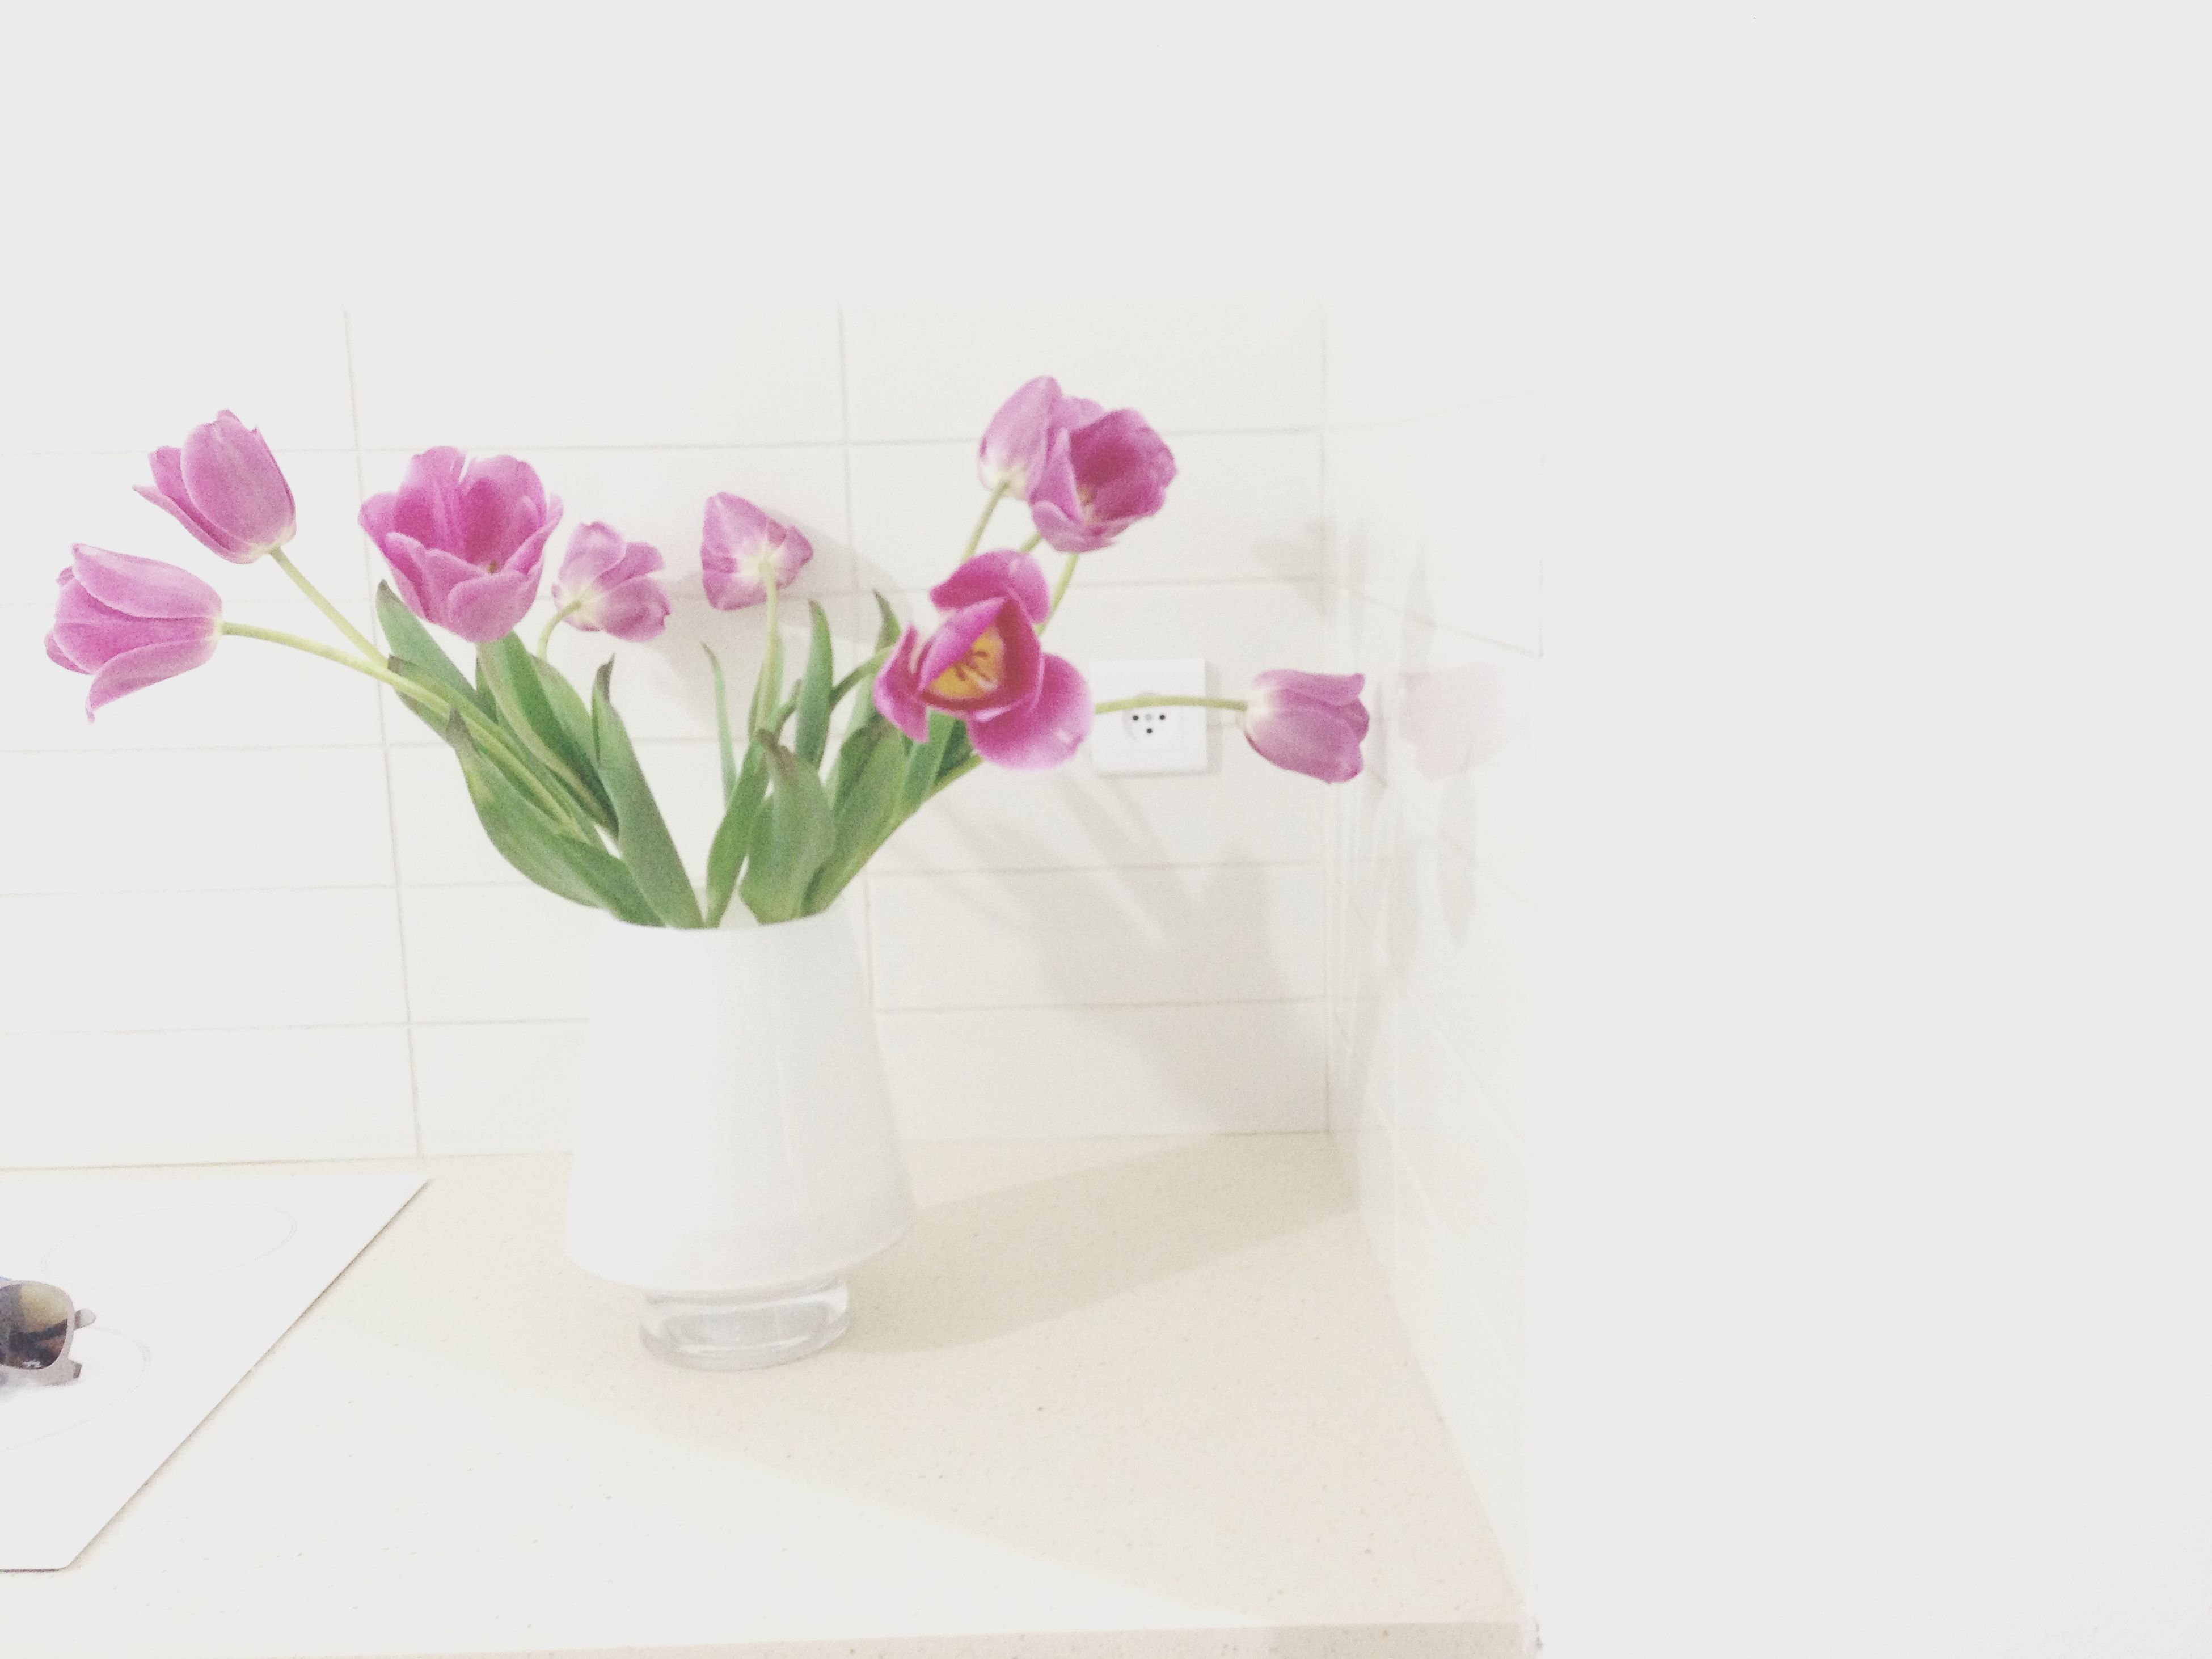 flower, fragility, vase, freshness, indoors, petal, wall - building feature, plant, pink color, flower head, growth, stem, beauty in nature, potted plant, copy space, decoration, wall, leaf, white background, nature